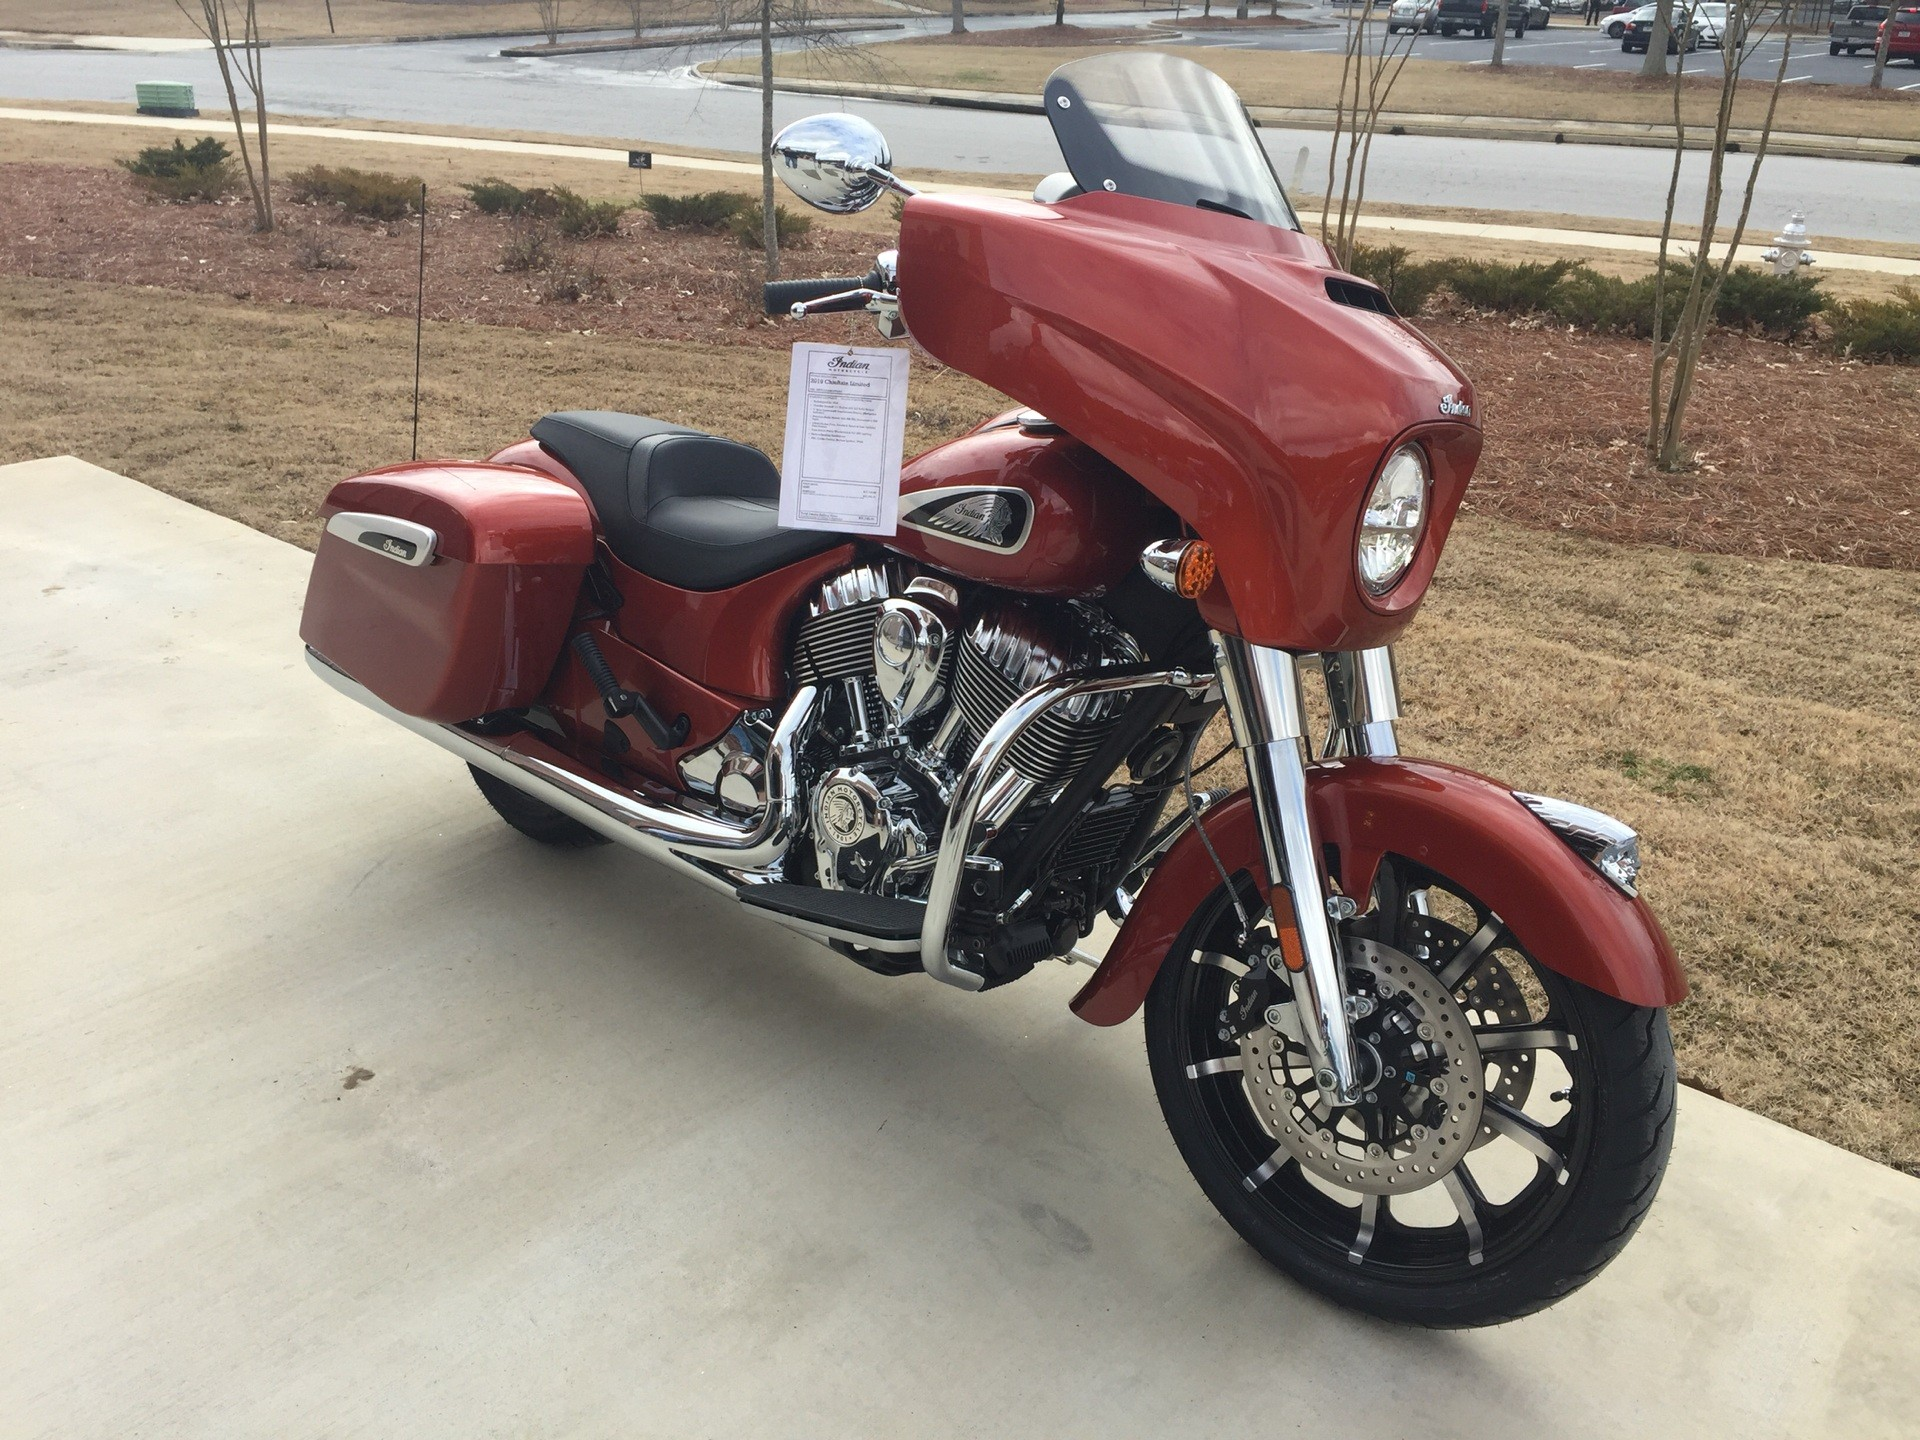 2019 Indian Chieftain® Limited Icon Series in Buford, Georgia - Photo 6